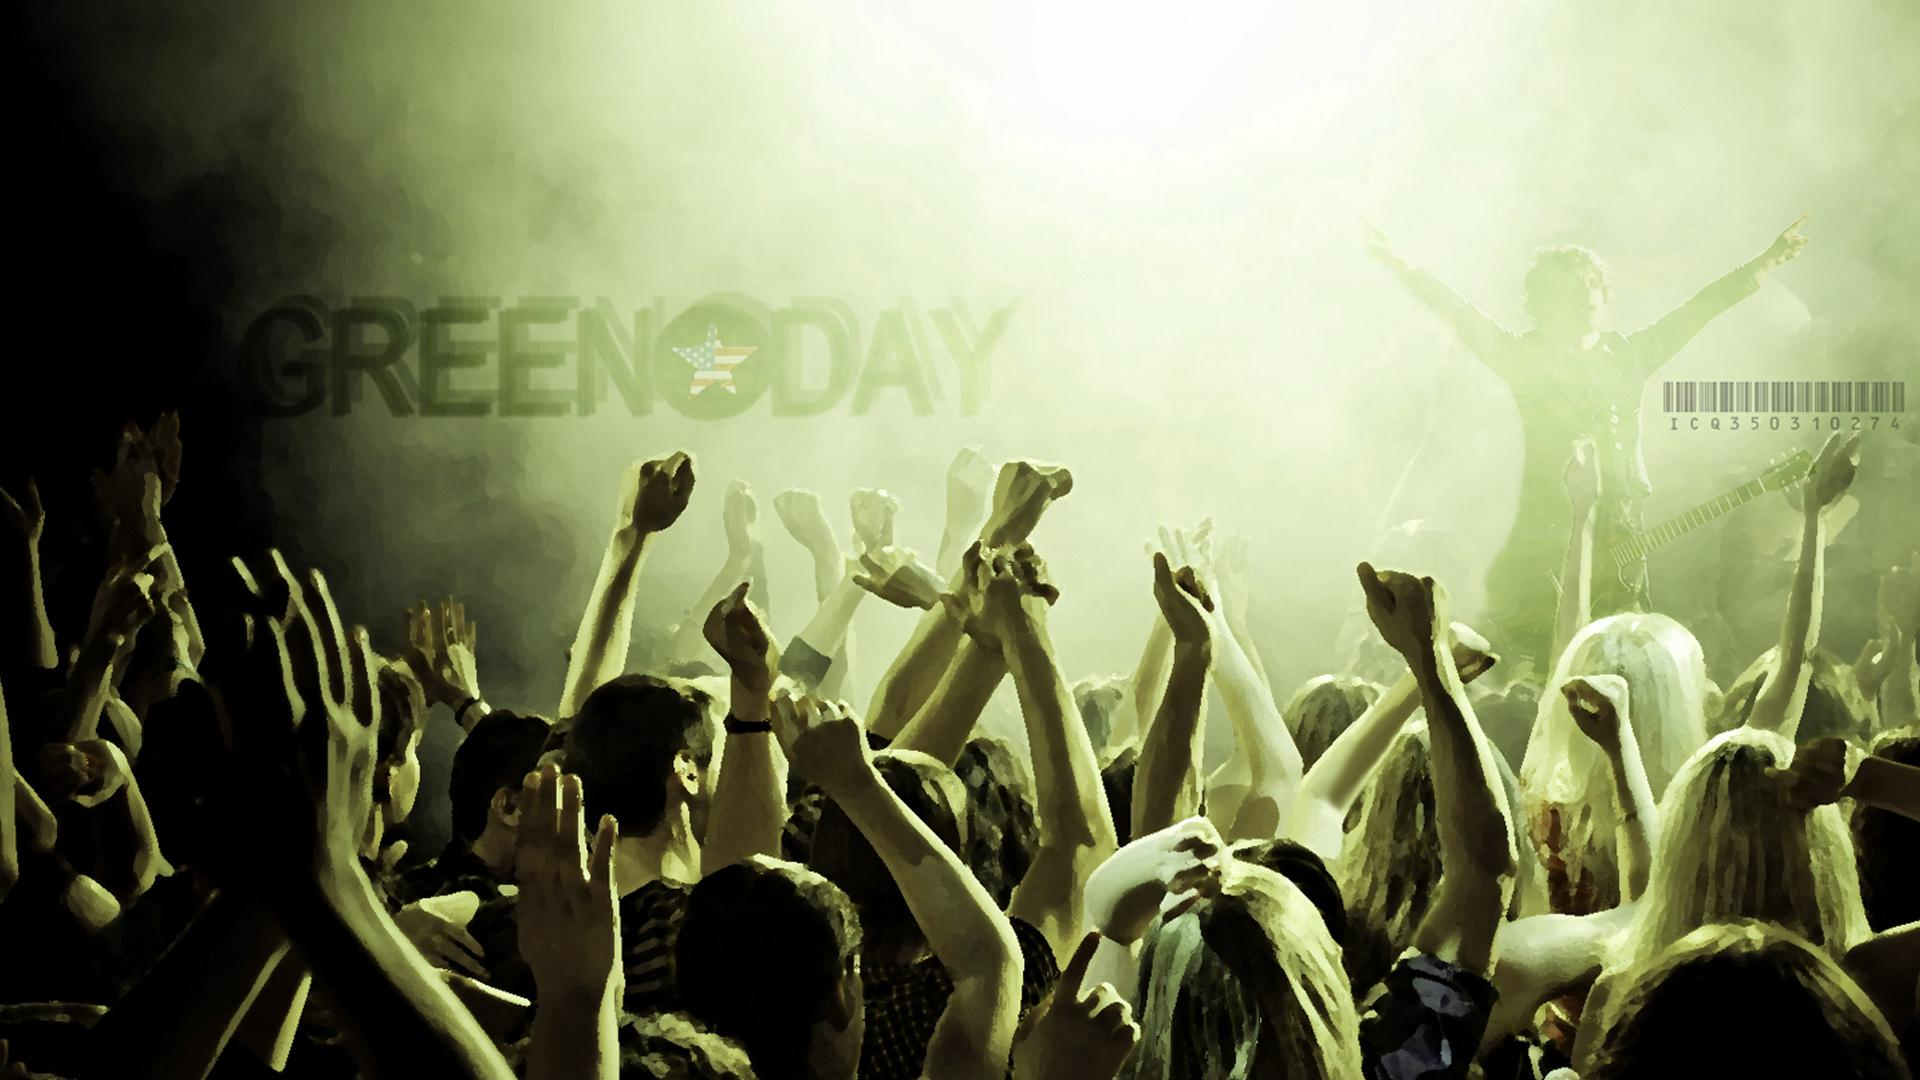 Green Day 1920x1080